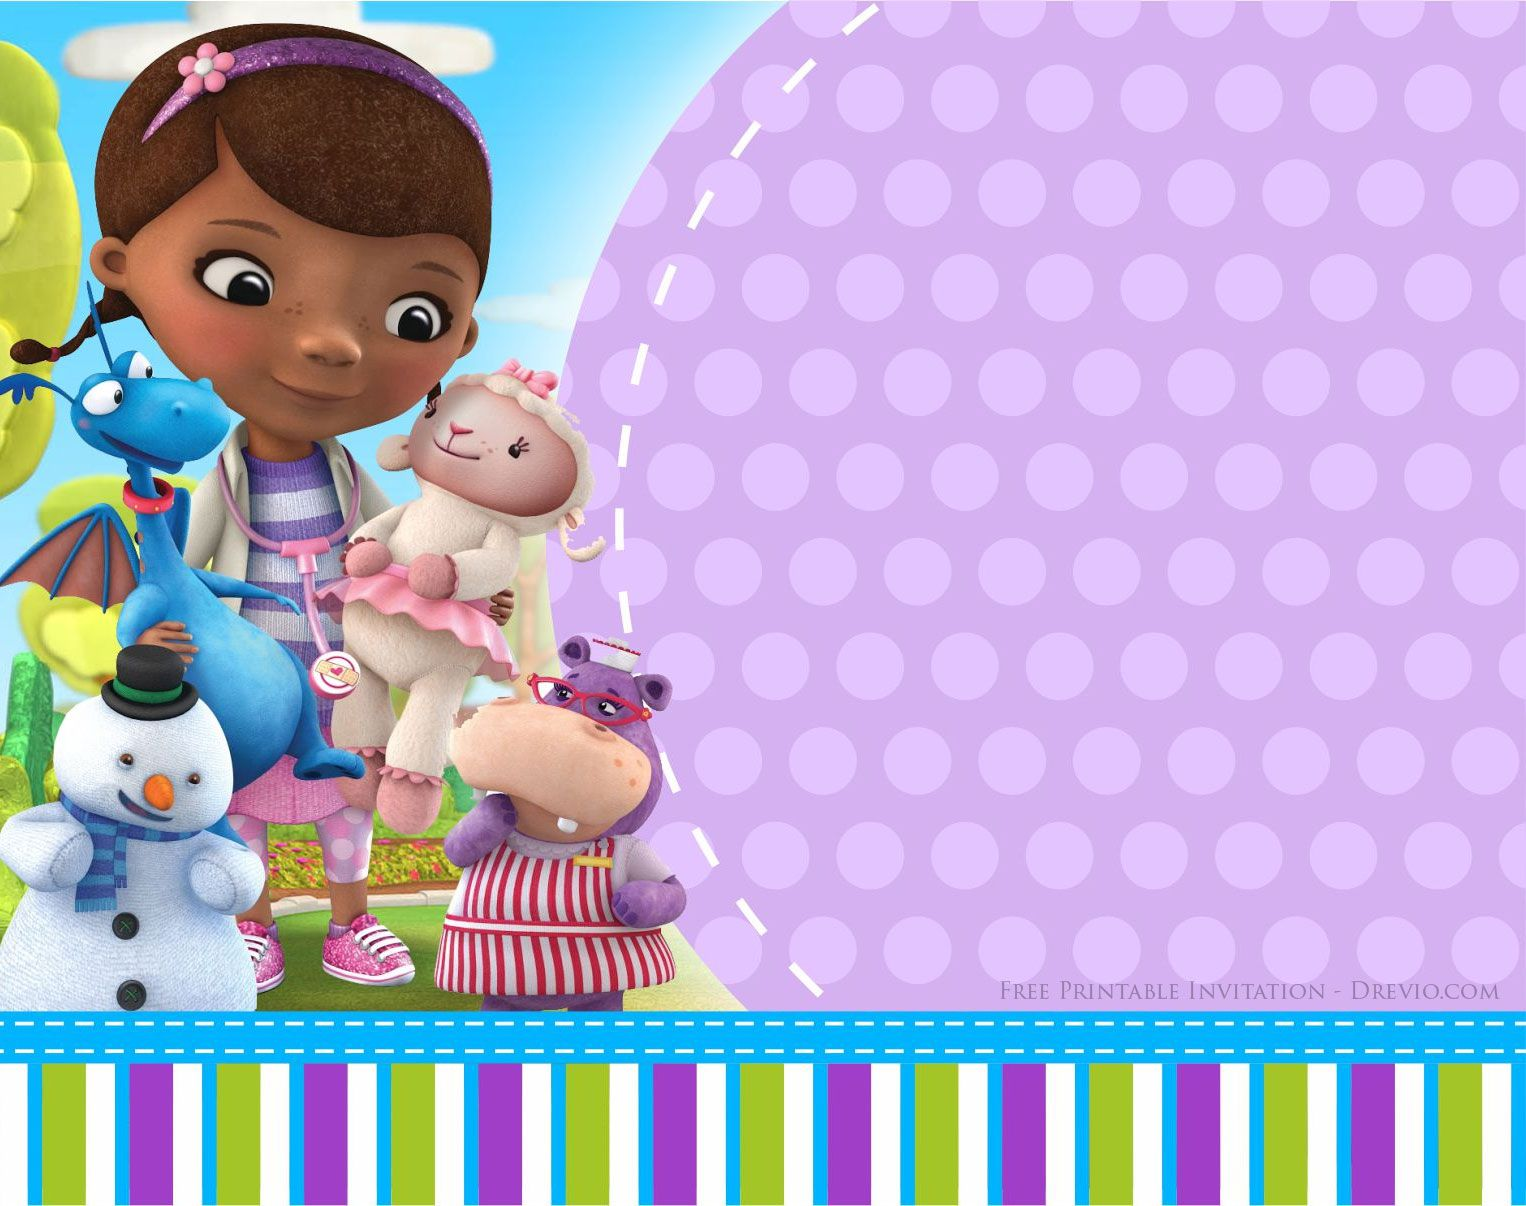 Doc Mcstuffins Birthday Invitation Templates Drevio Invitations Design